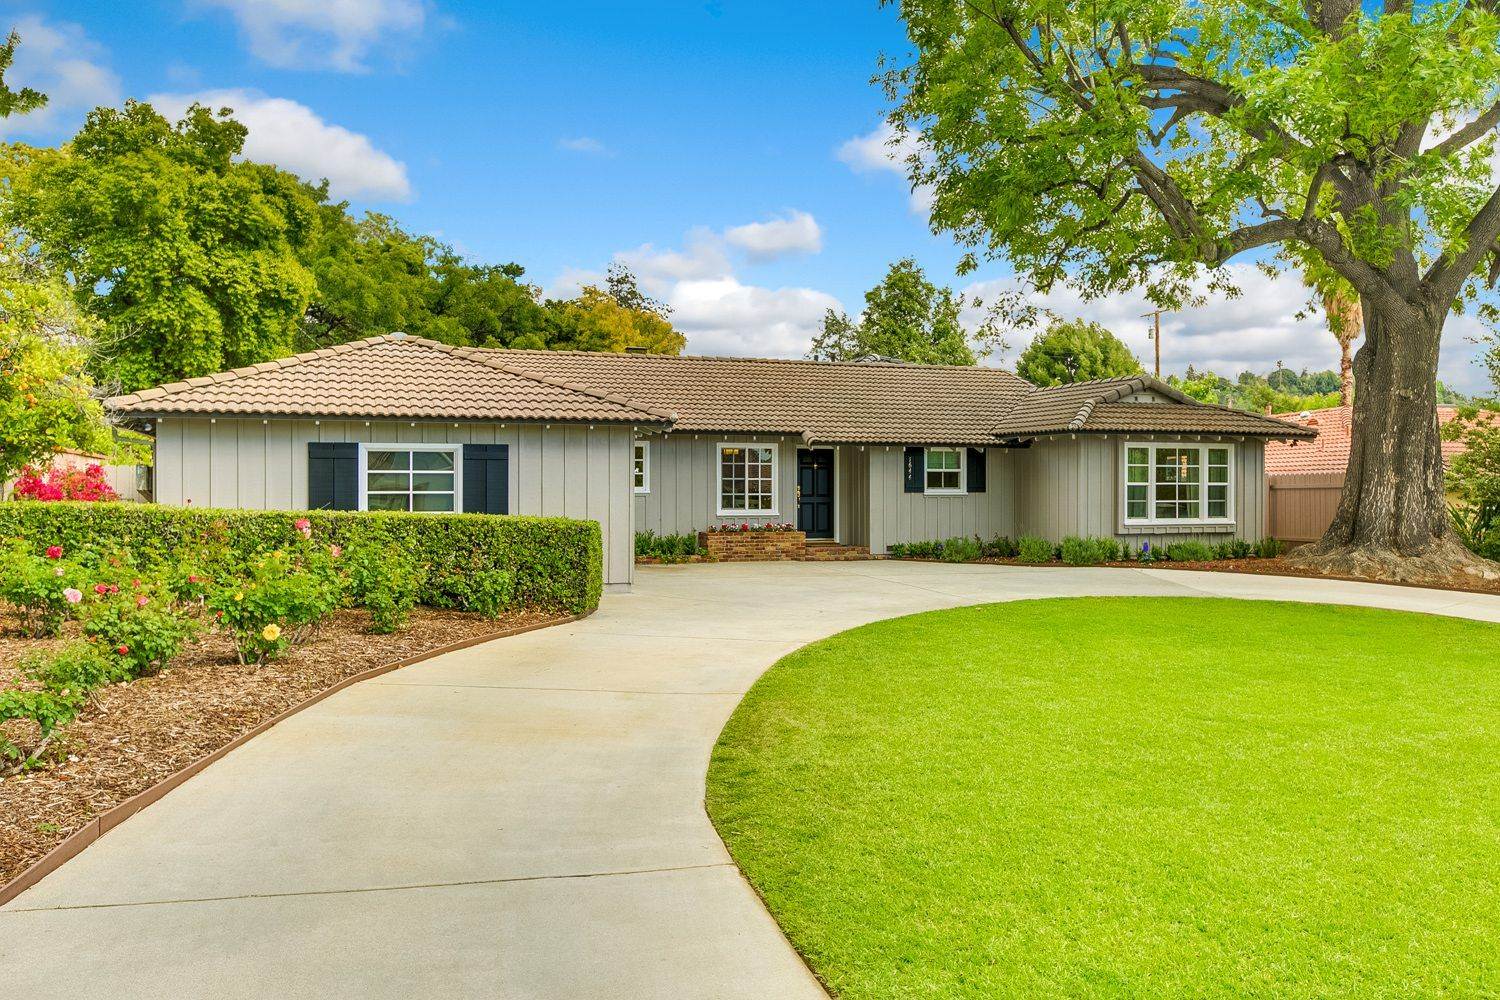 California Ranch Style Homes Exterior Curb Appeal